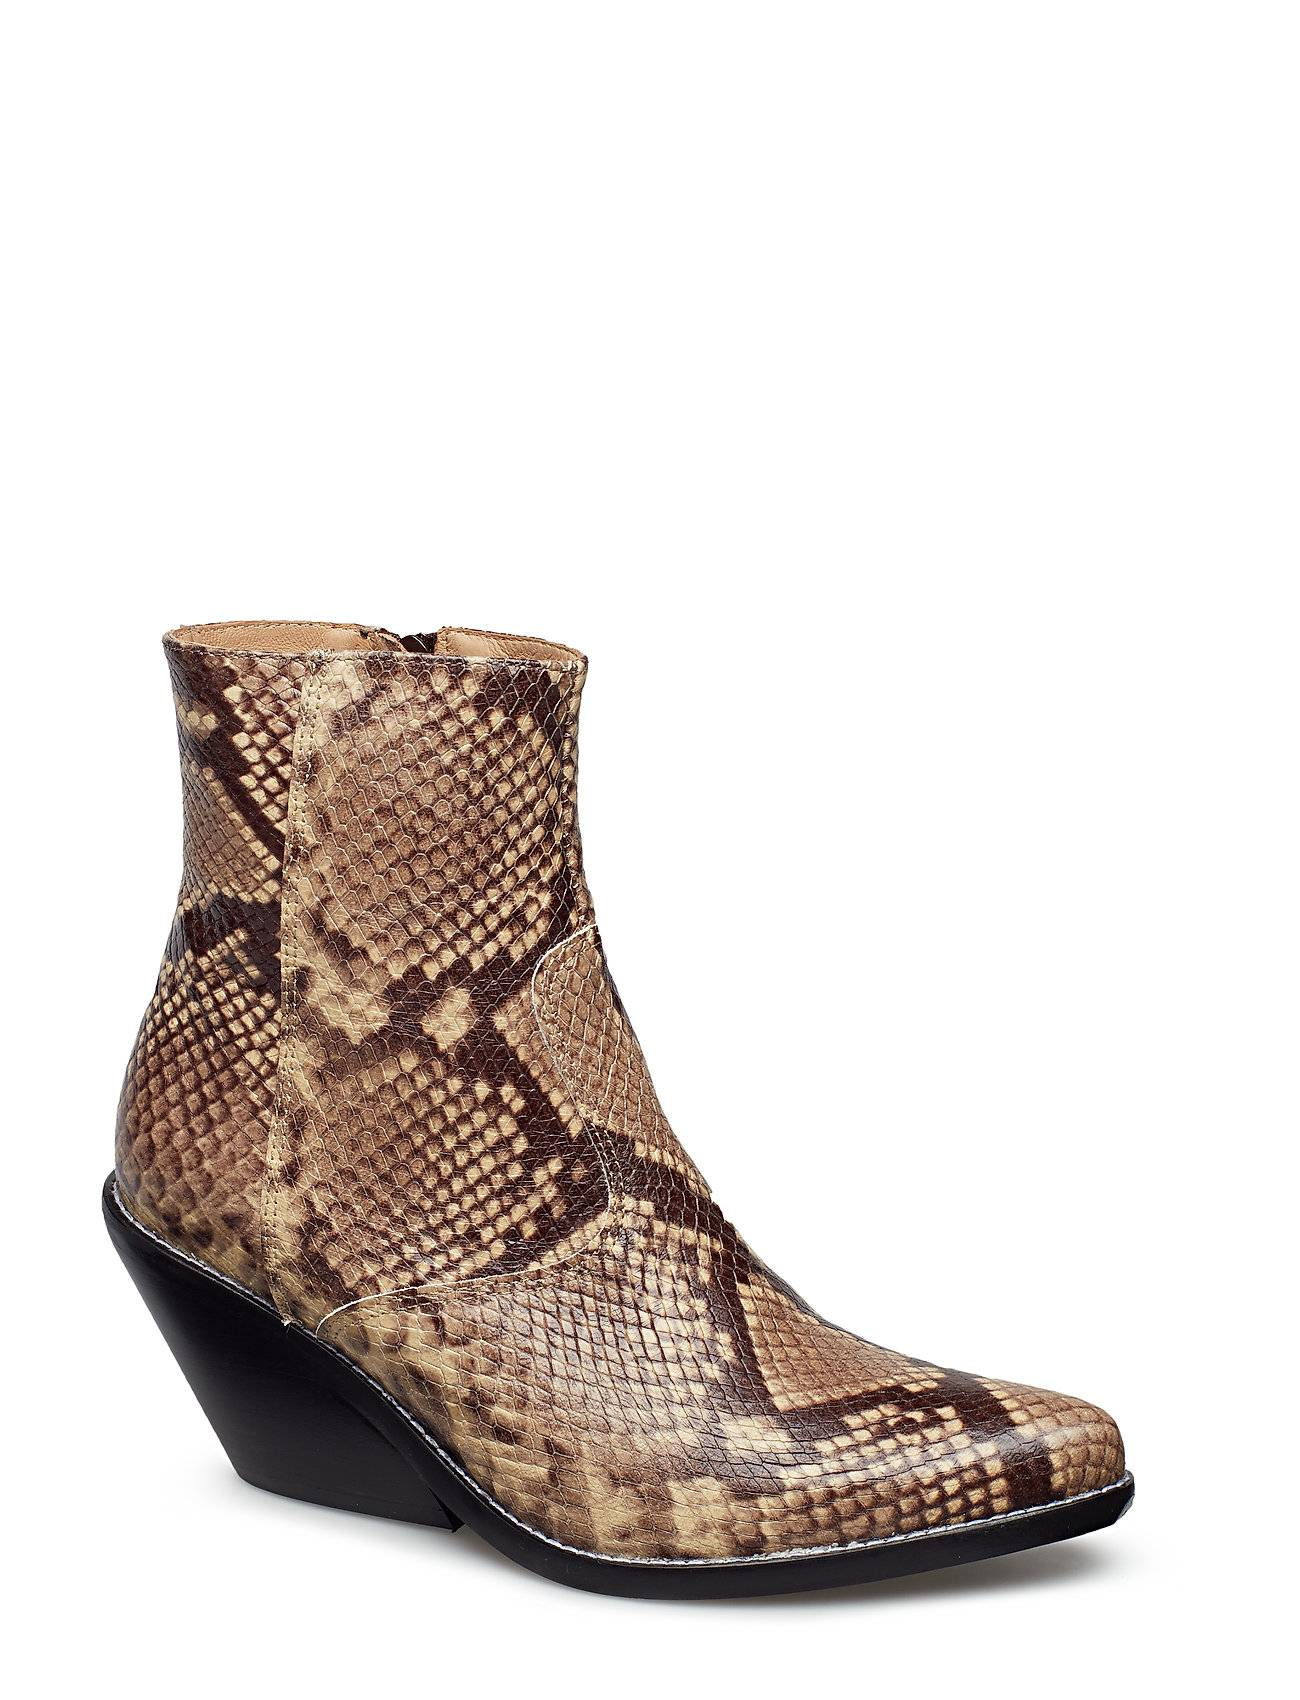 Henry Kole Evie Snake Brown Shoes Boots Ankle Boots Ankle Boots With Heel Ruskea Henry Kole